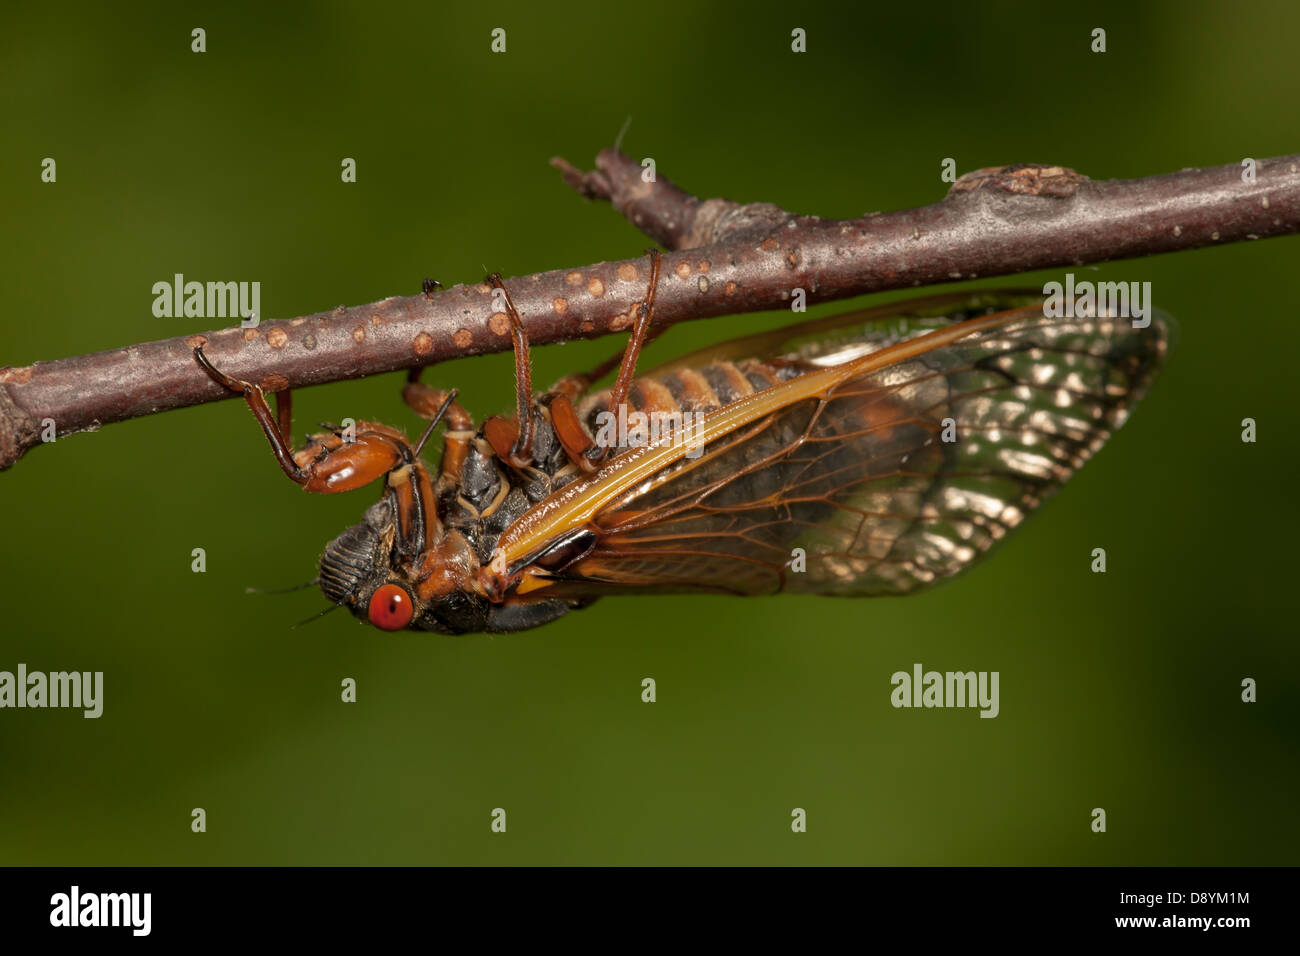 An adult Brood II 17-year periodical cicada (Magicicada septendecim) clings to a twig after emerging from its nymphal - Stock Image